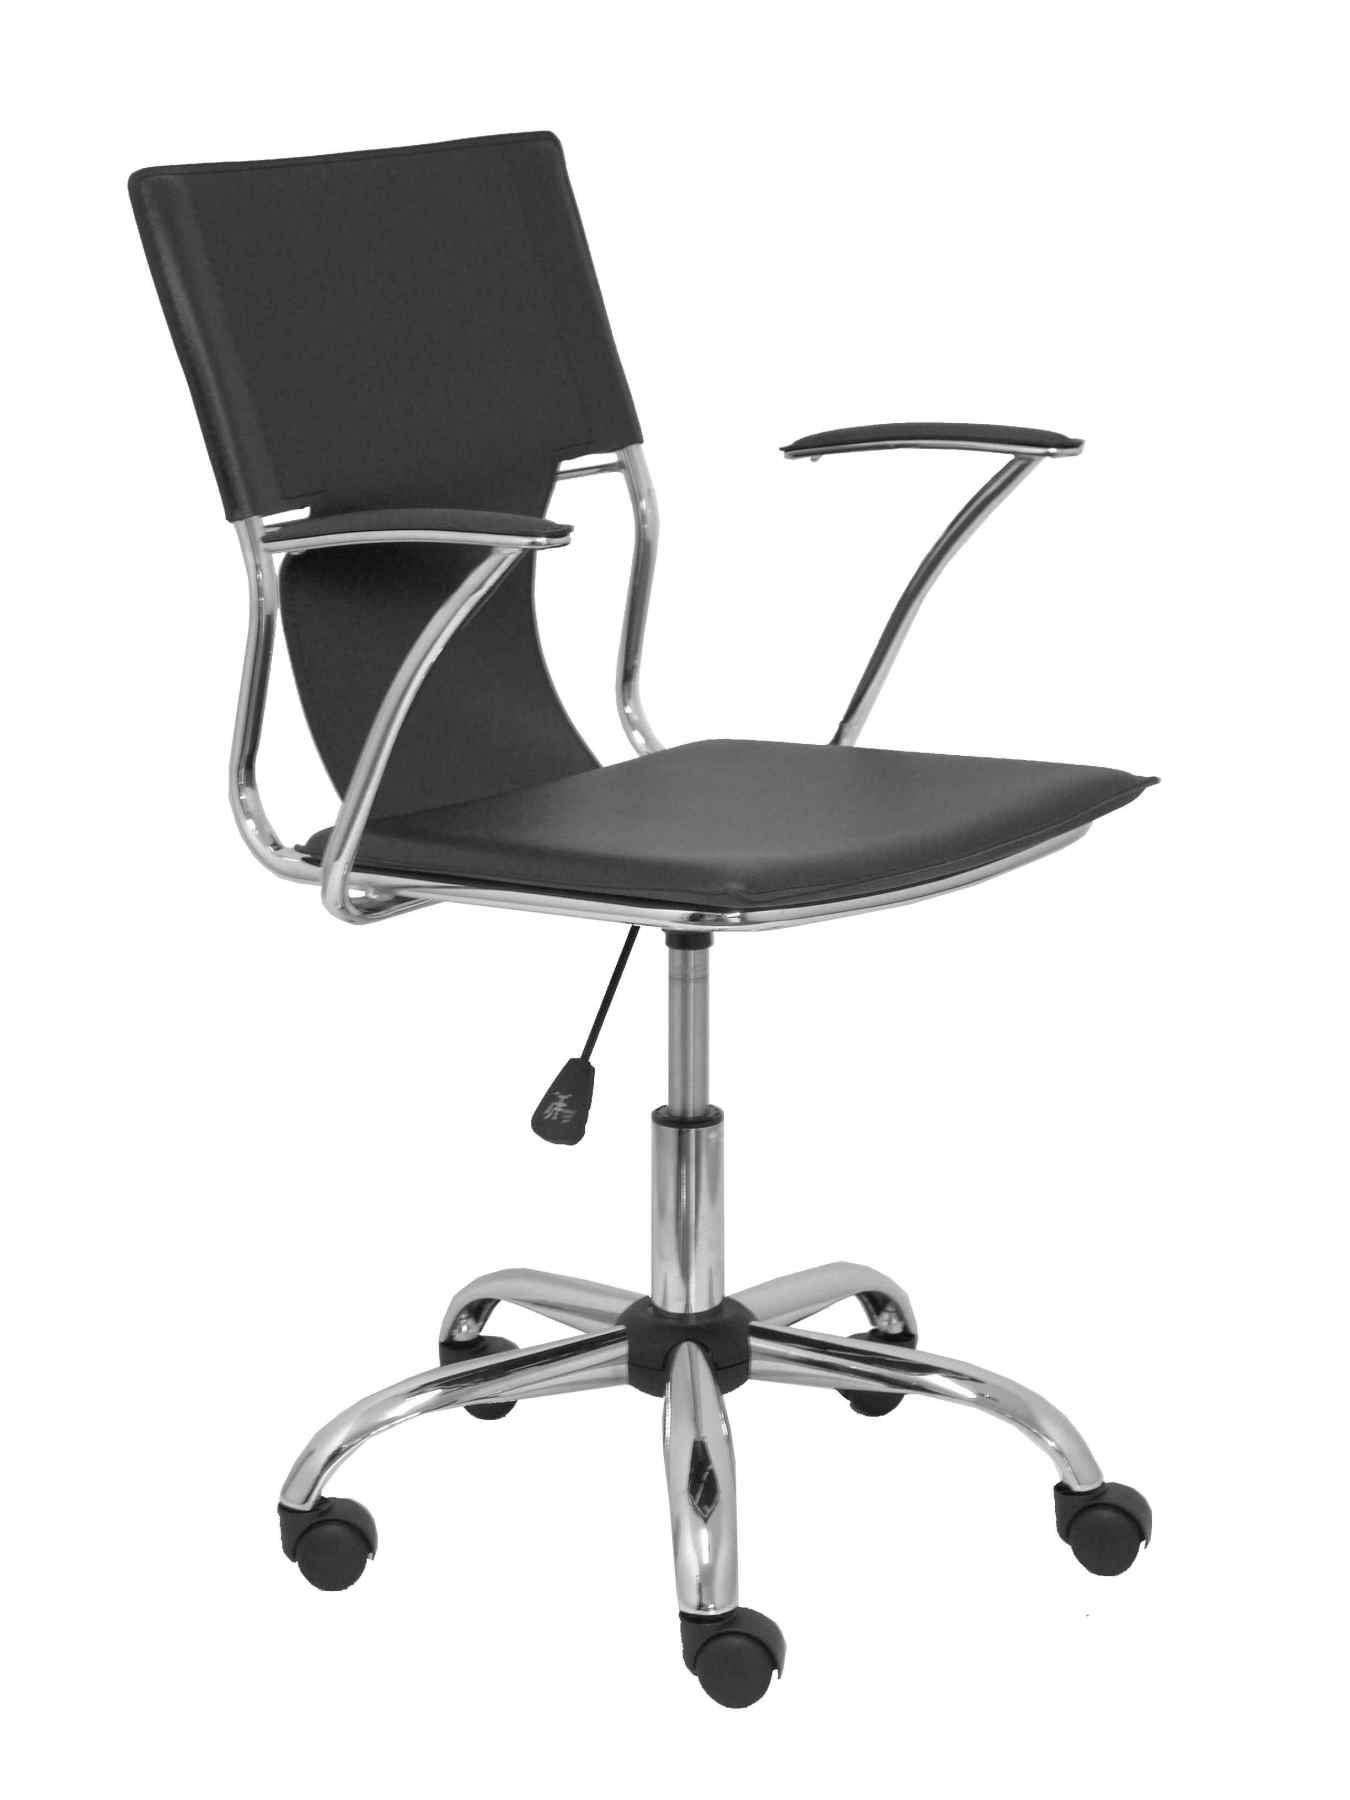 Ergonomic Office Chair With Arms Fixed Adjustable Height And Swivel 360 °-Seat And Backrest In S